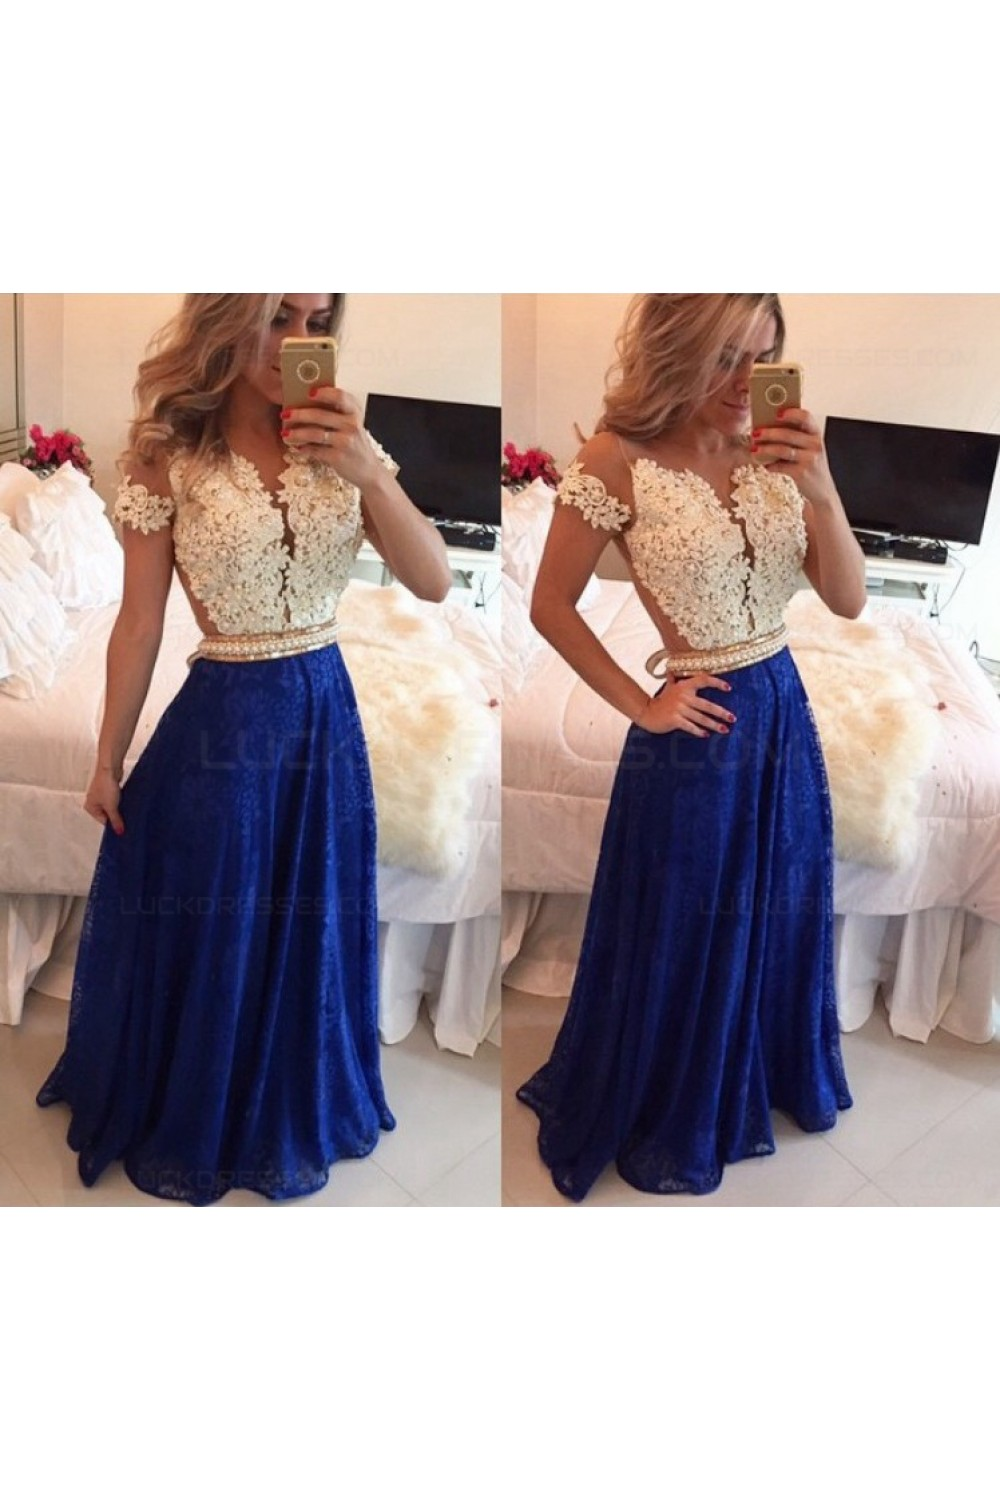 A-Line Short Sleeves Lace Chiffon Royal Blue White Long Prom Dresses  Evening Gowns 3020206 eaf5fd1ae